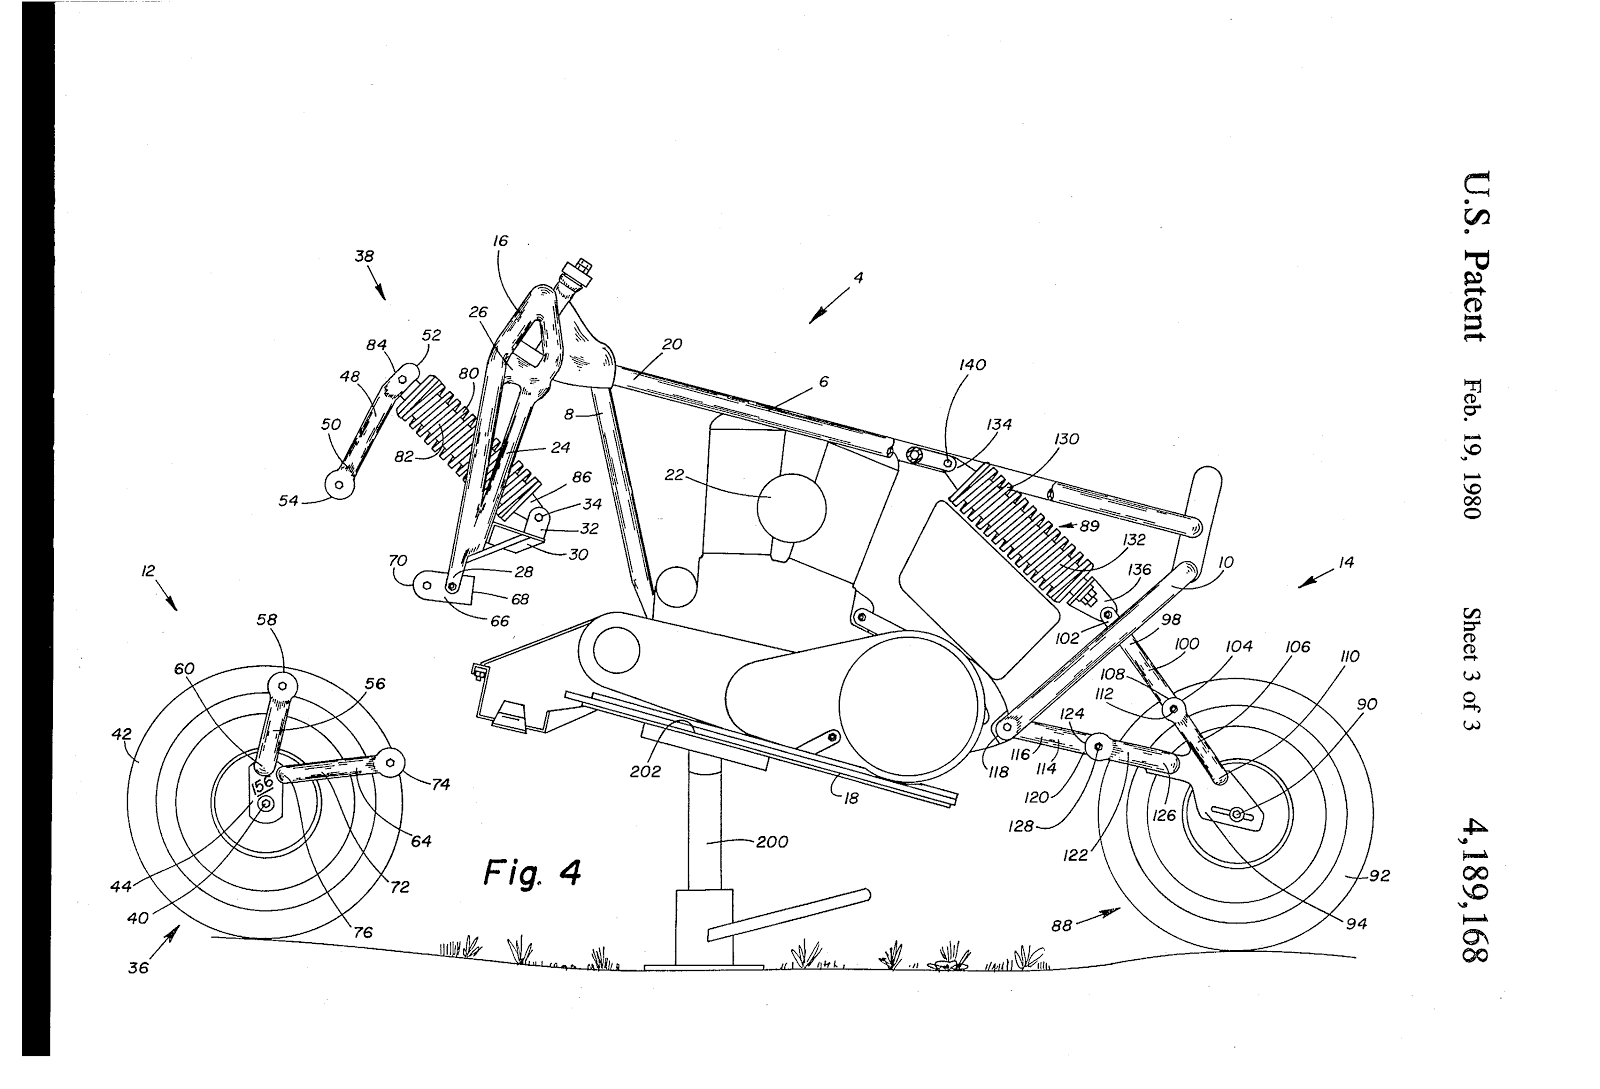 Orley Ray Courtney's final suspension design